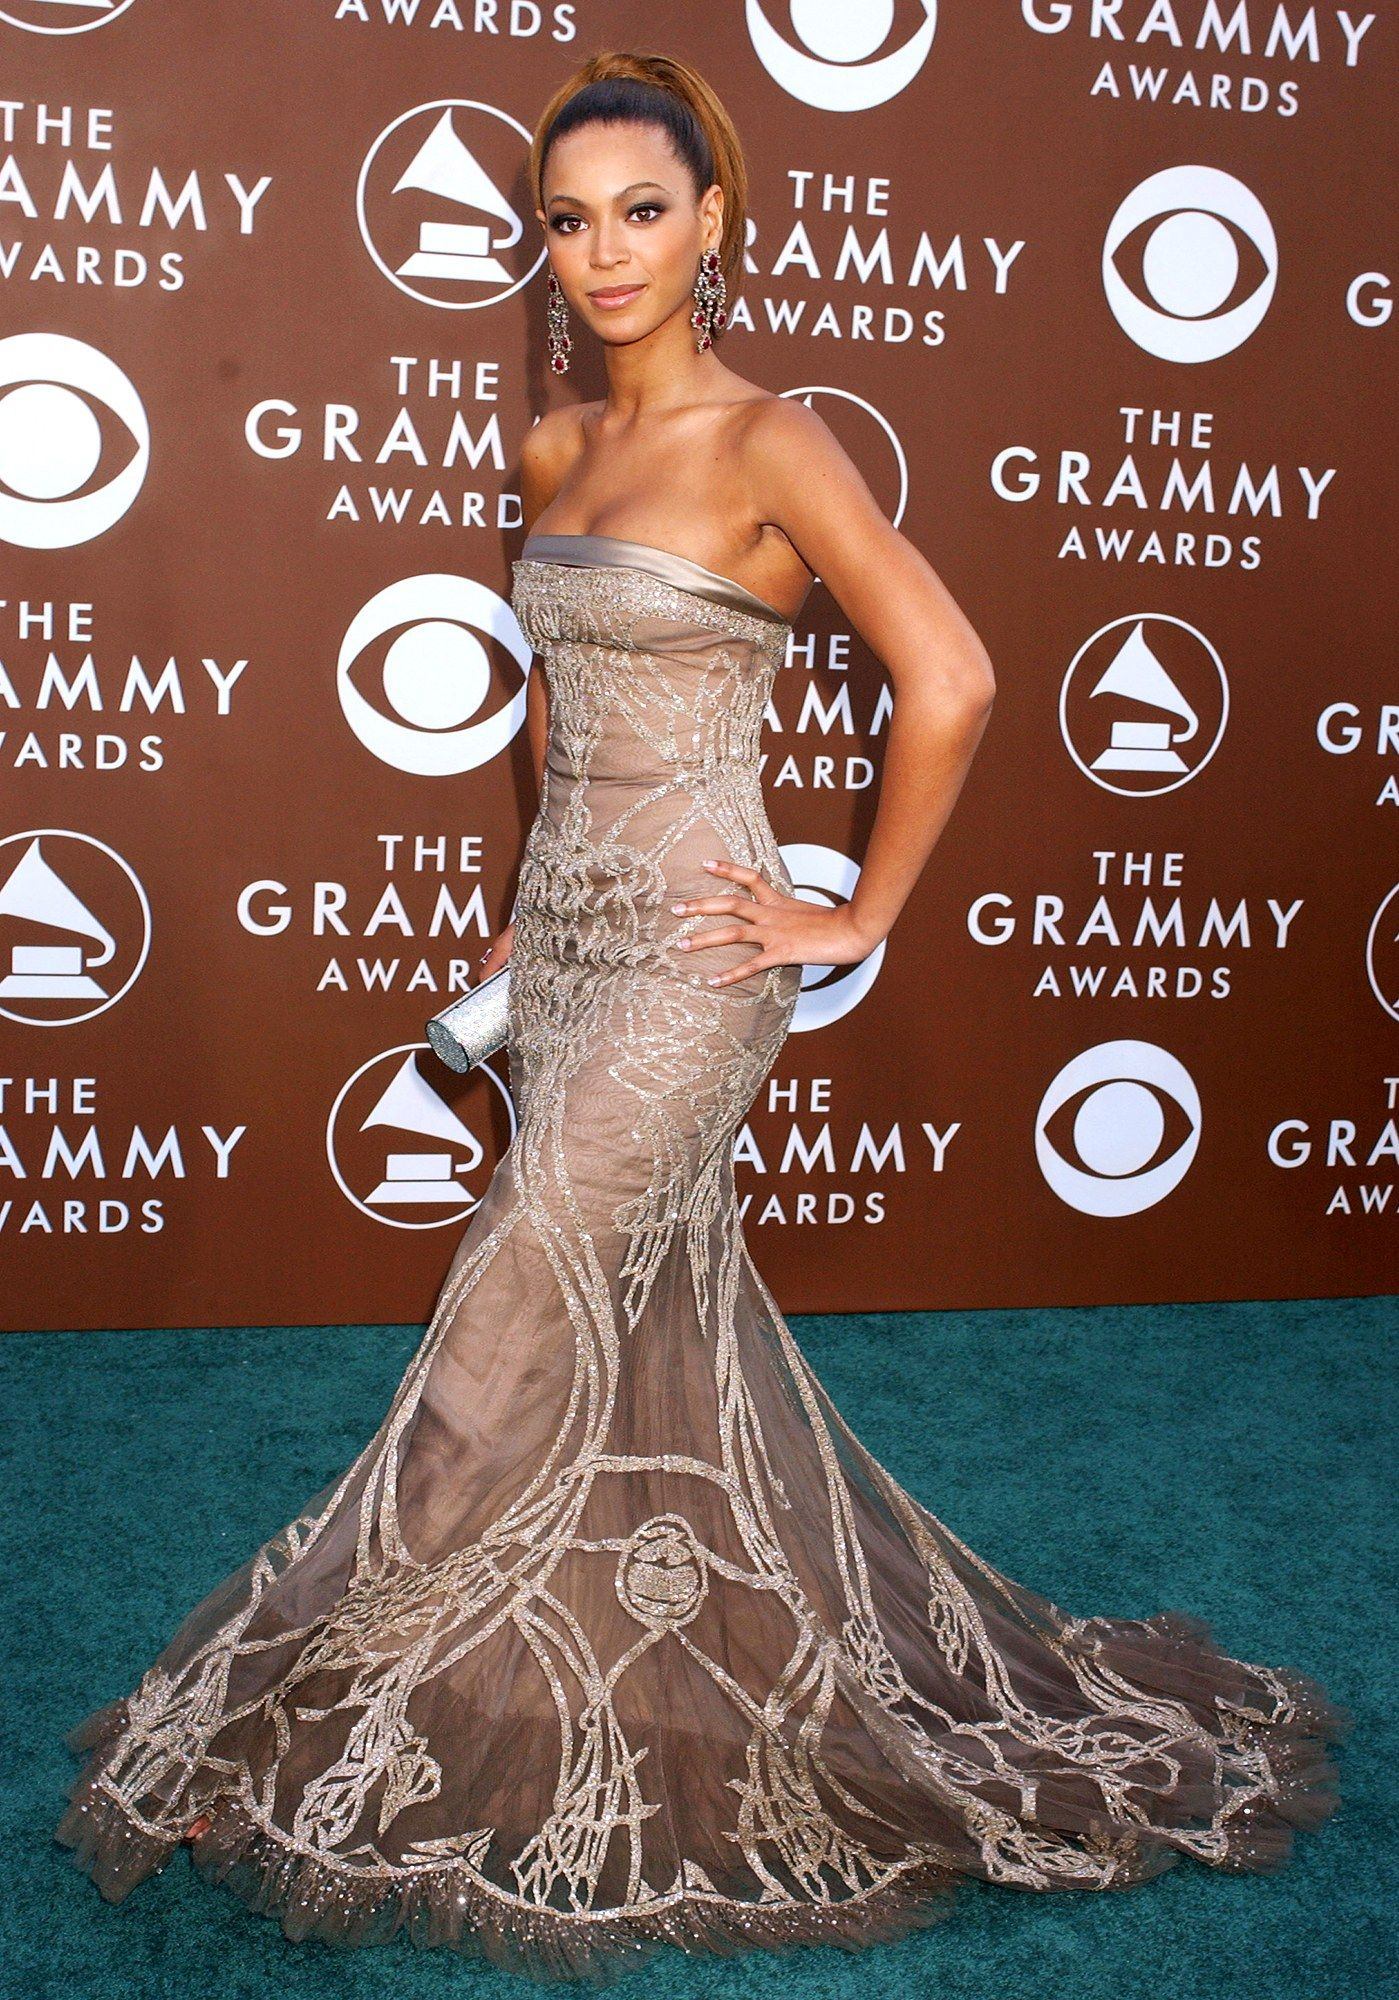 Beyoncé's Showstopping Grammy-Awards Style...2006